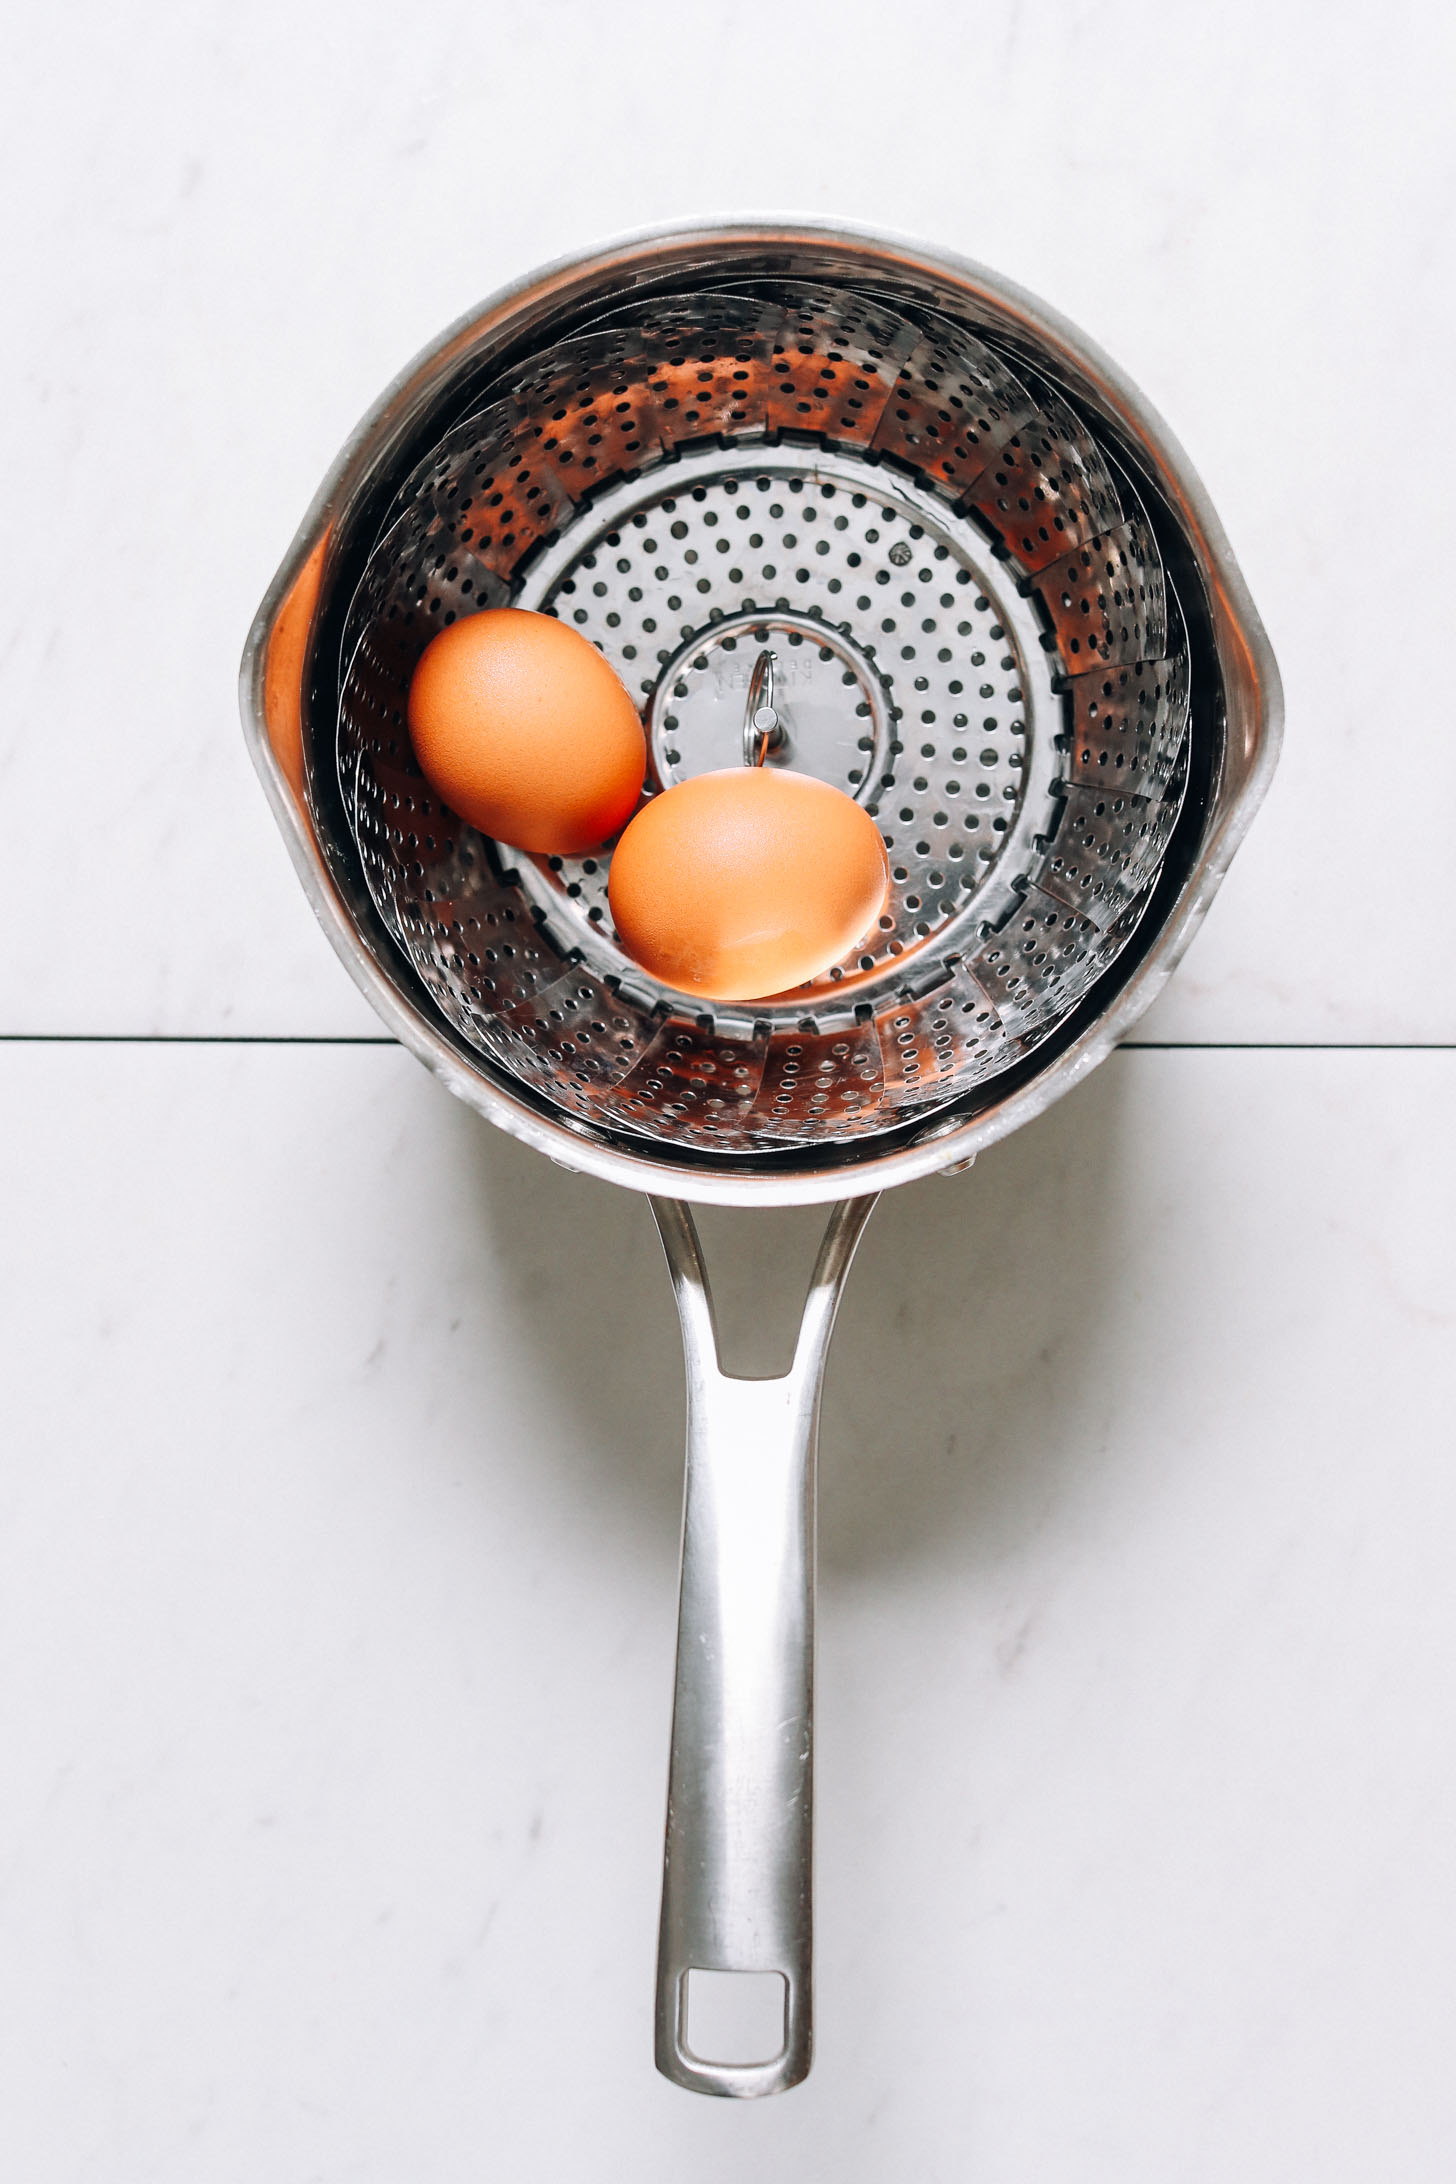 Eggs in a steamer basket to show how to steam hard boiled eggs